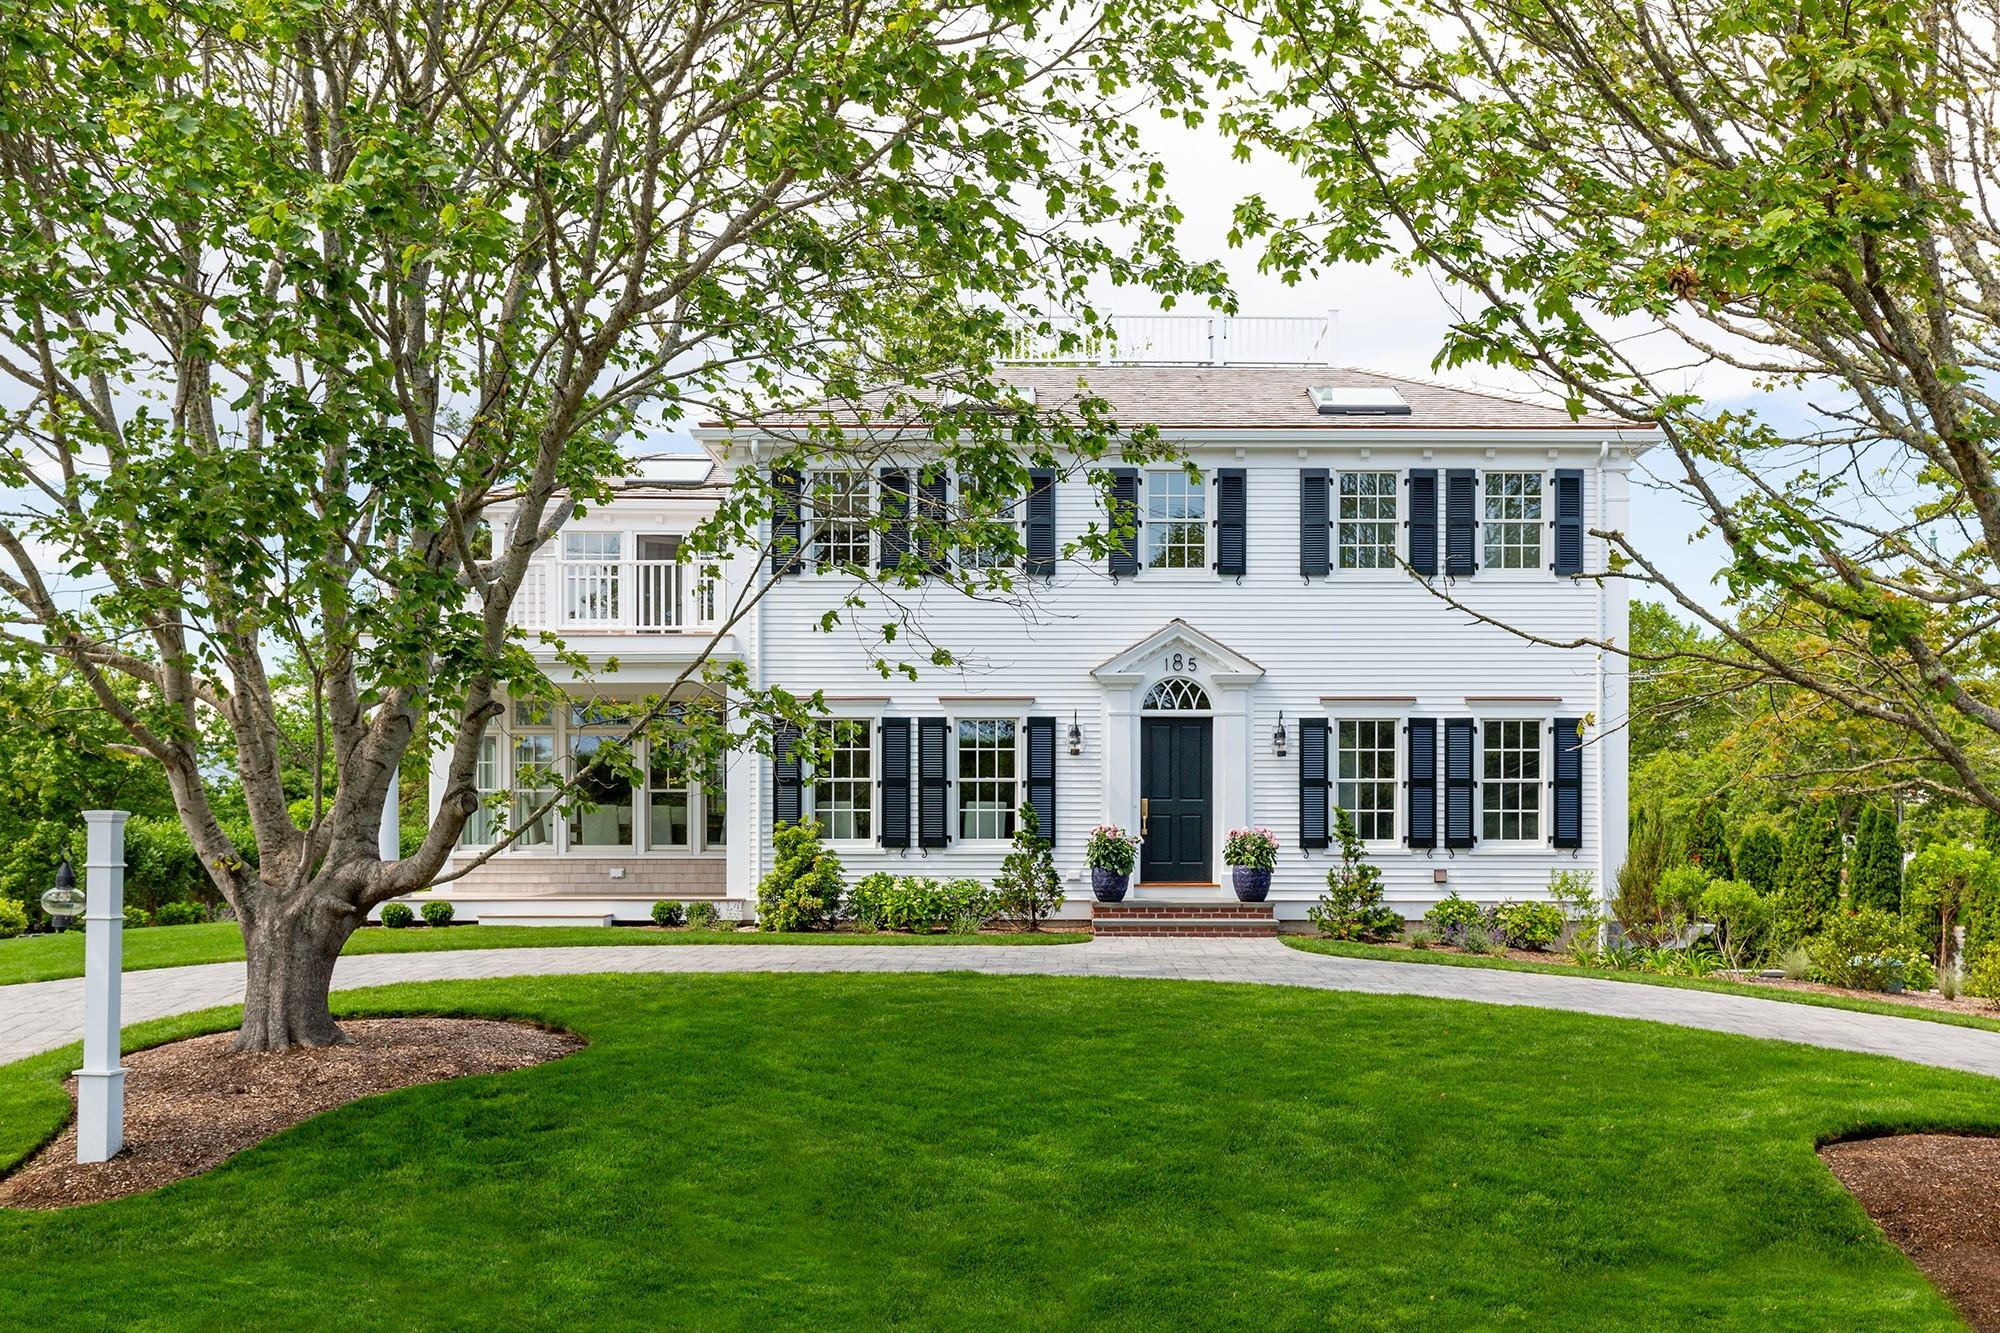 185 Queen Anne Road, Chatham MA, 02633